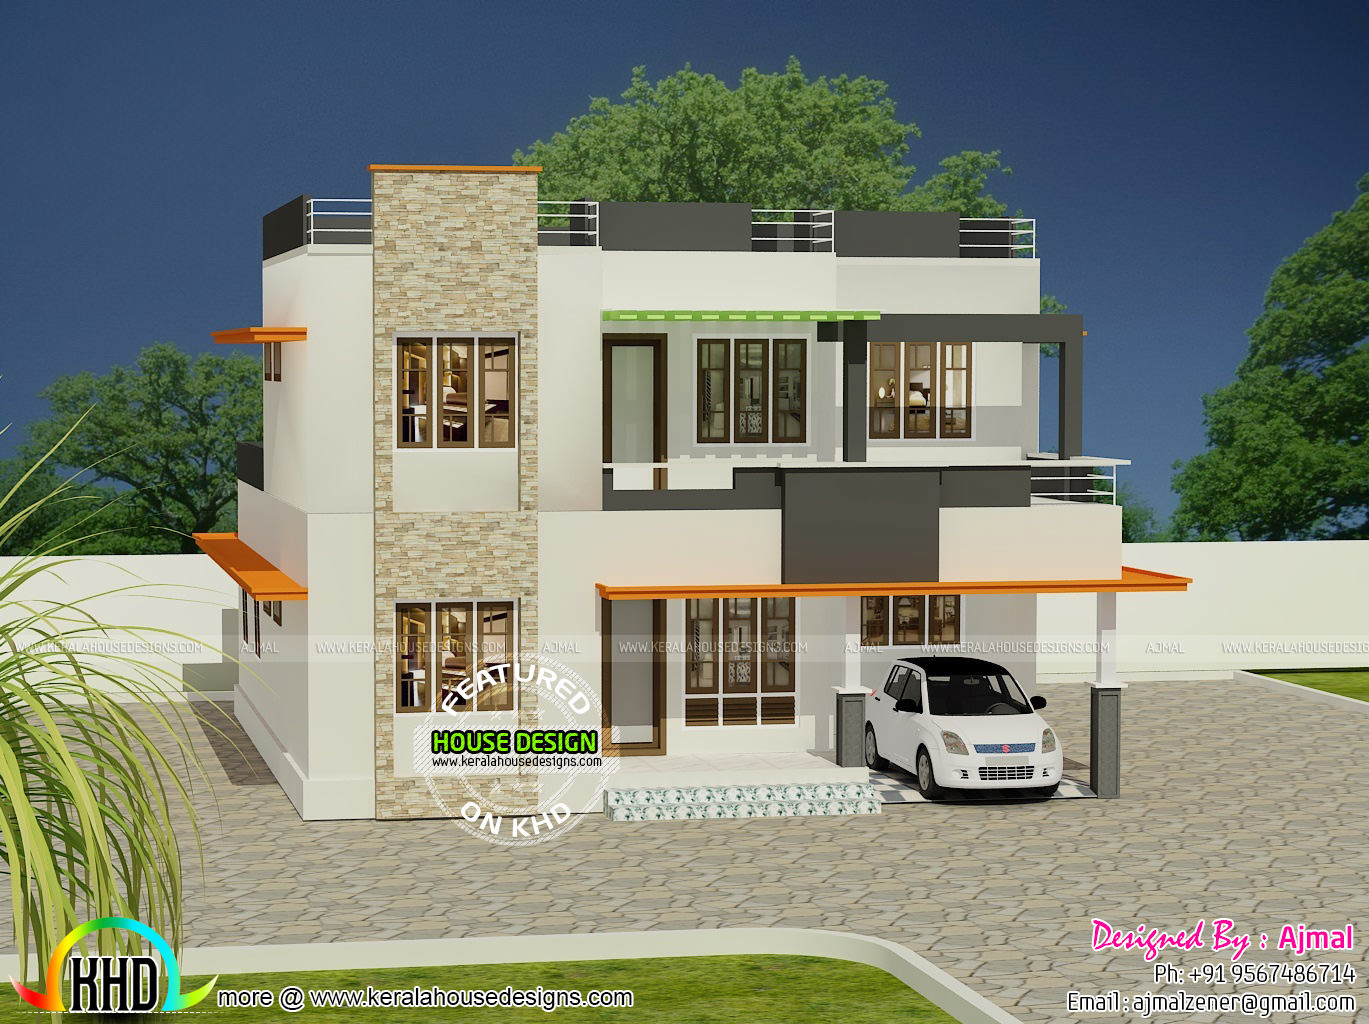 20 lakhs house in Kerala - Kerala home design and floor plans